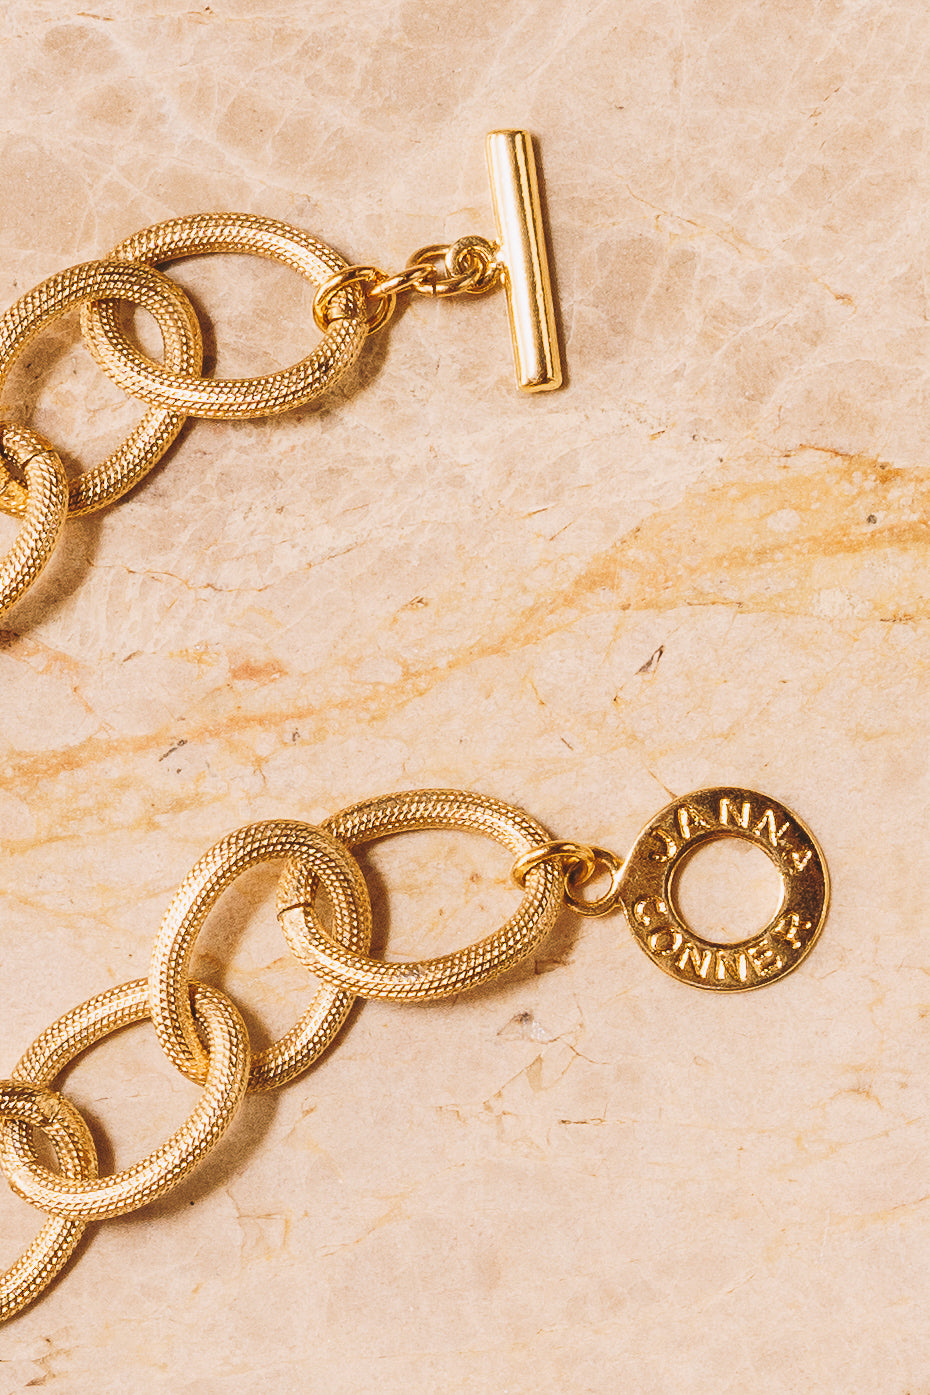 gold links with Janna Conner toggle clasp